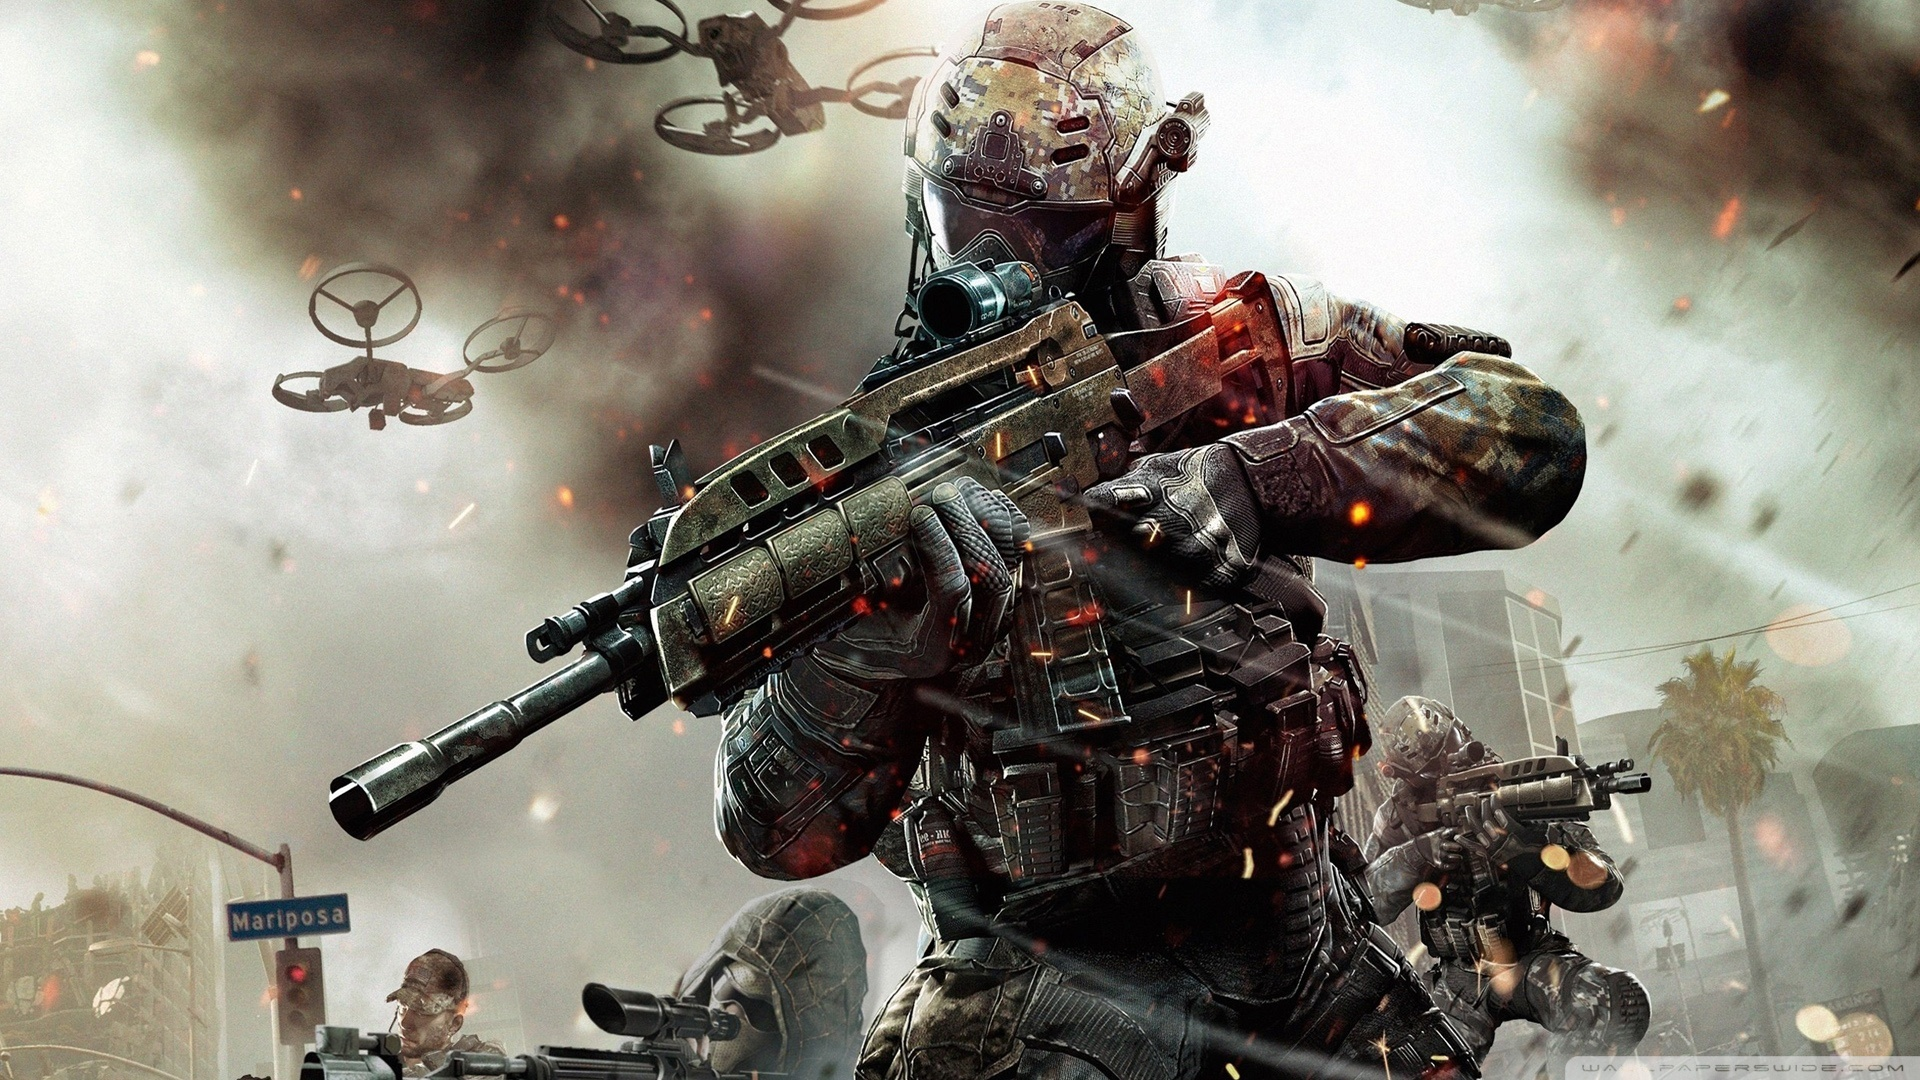 Collection Of Full Hd Gaming Wallpapers On Hdwallpapers 1920x1080